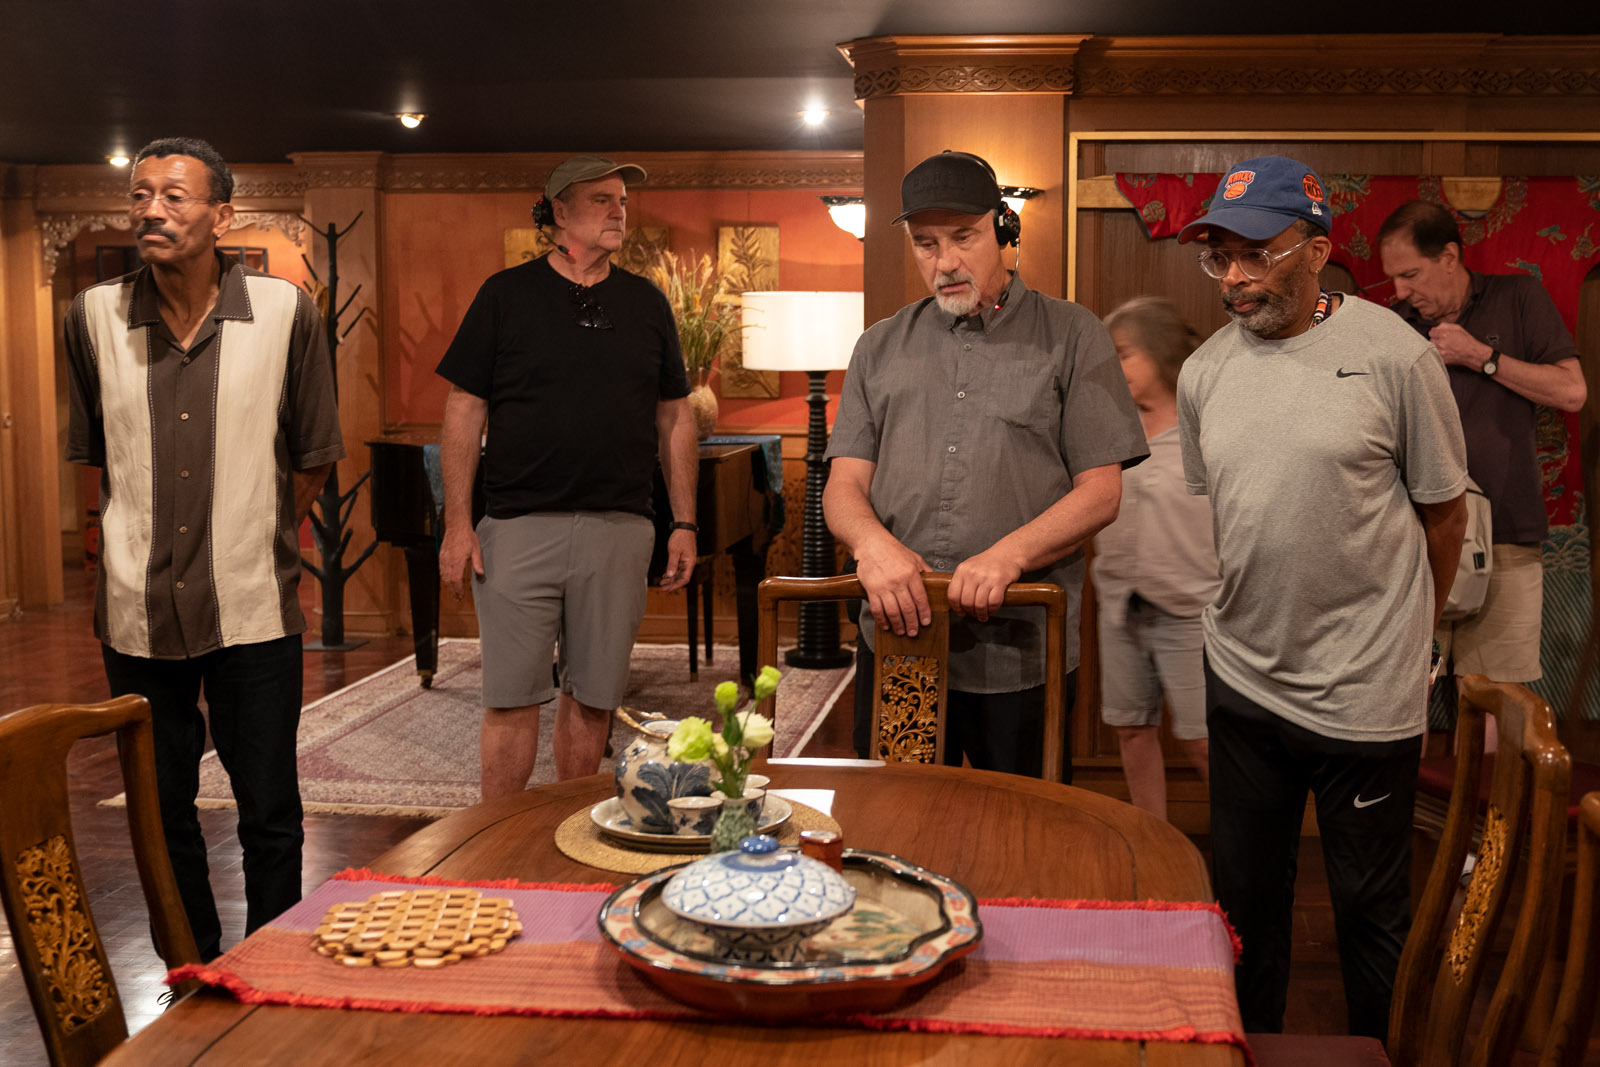 DA 5 BLOODS: (L to R) Production Designer WYNN THOMAS, CINEMATOGRAPHER NEWTON THOMAS SIGEL and DIRECTOR SPIKE LEE of DA 5 BLOODS. Cr. DAVID LEE/NETFLIX © 2020